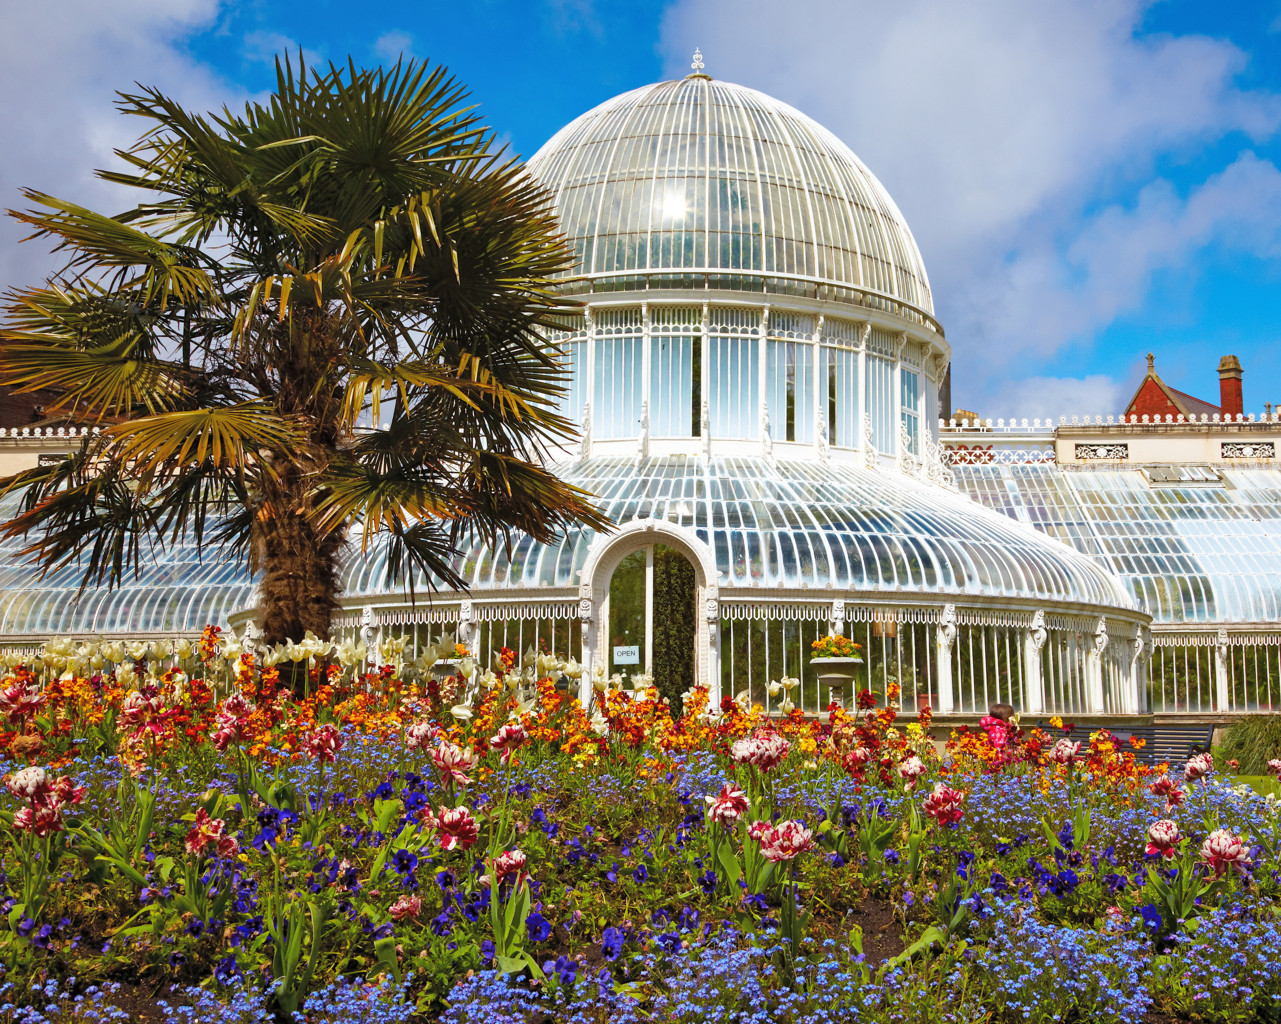 Botanical Garden Belfast - Best Green Houses in Europe - European Best Destinations Copyright Serg Zastavkin